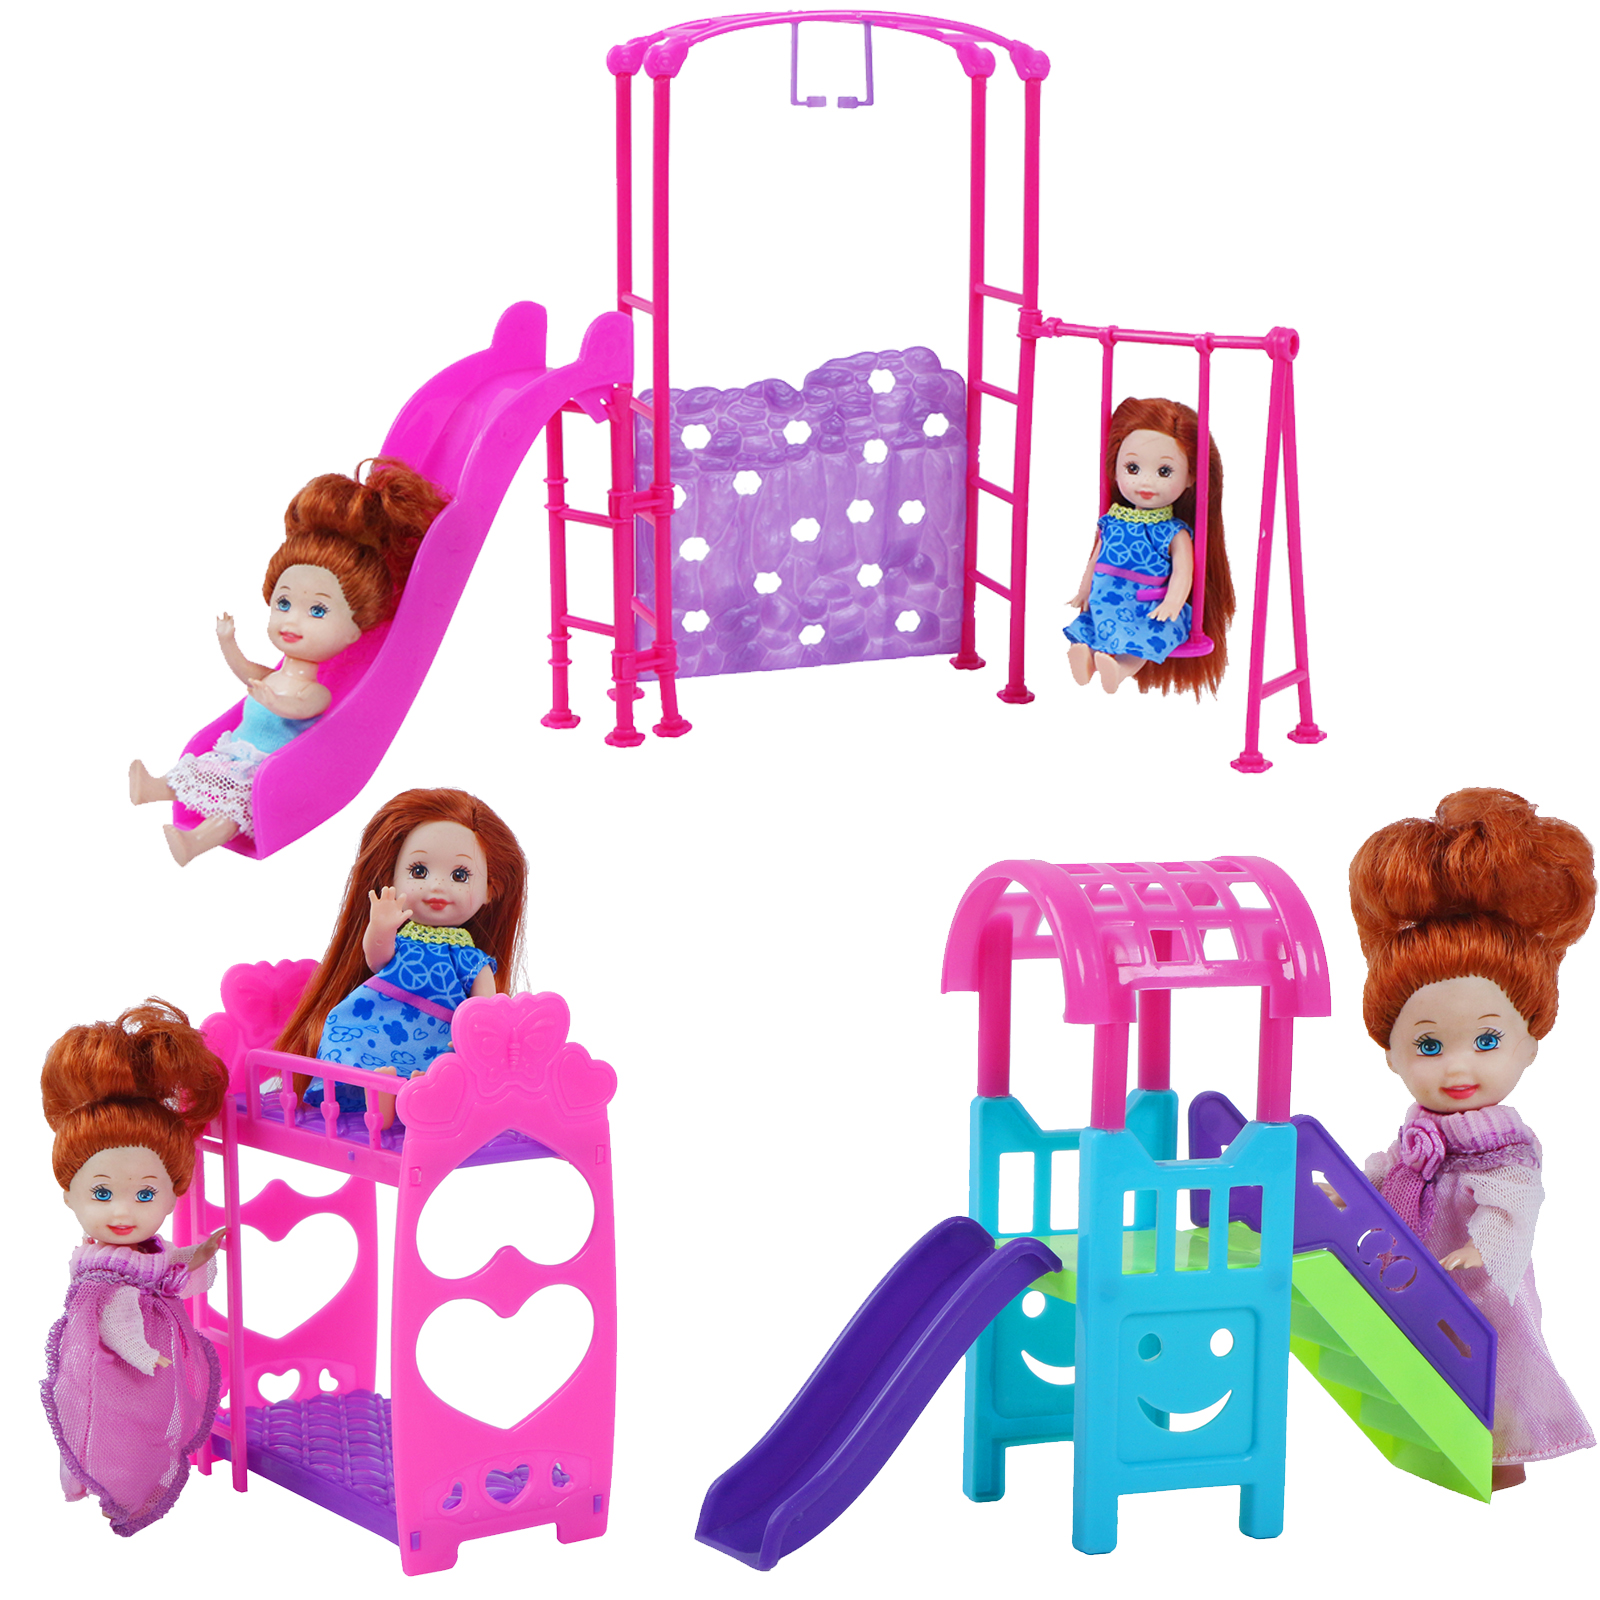 Us 1 66 24 Off Cute Nursery Dollhouse Pink Infant Bunk Bed Swing Slide Furniture For Barbie Doll Sister Kelly For Simba Doll Accessories In Dolls